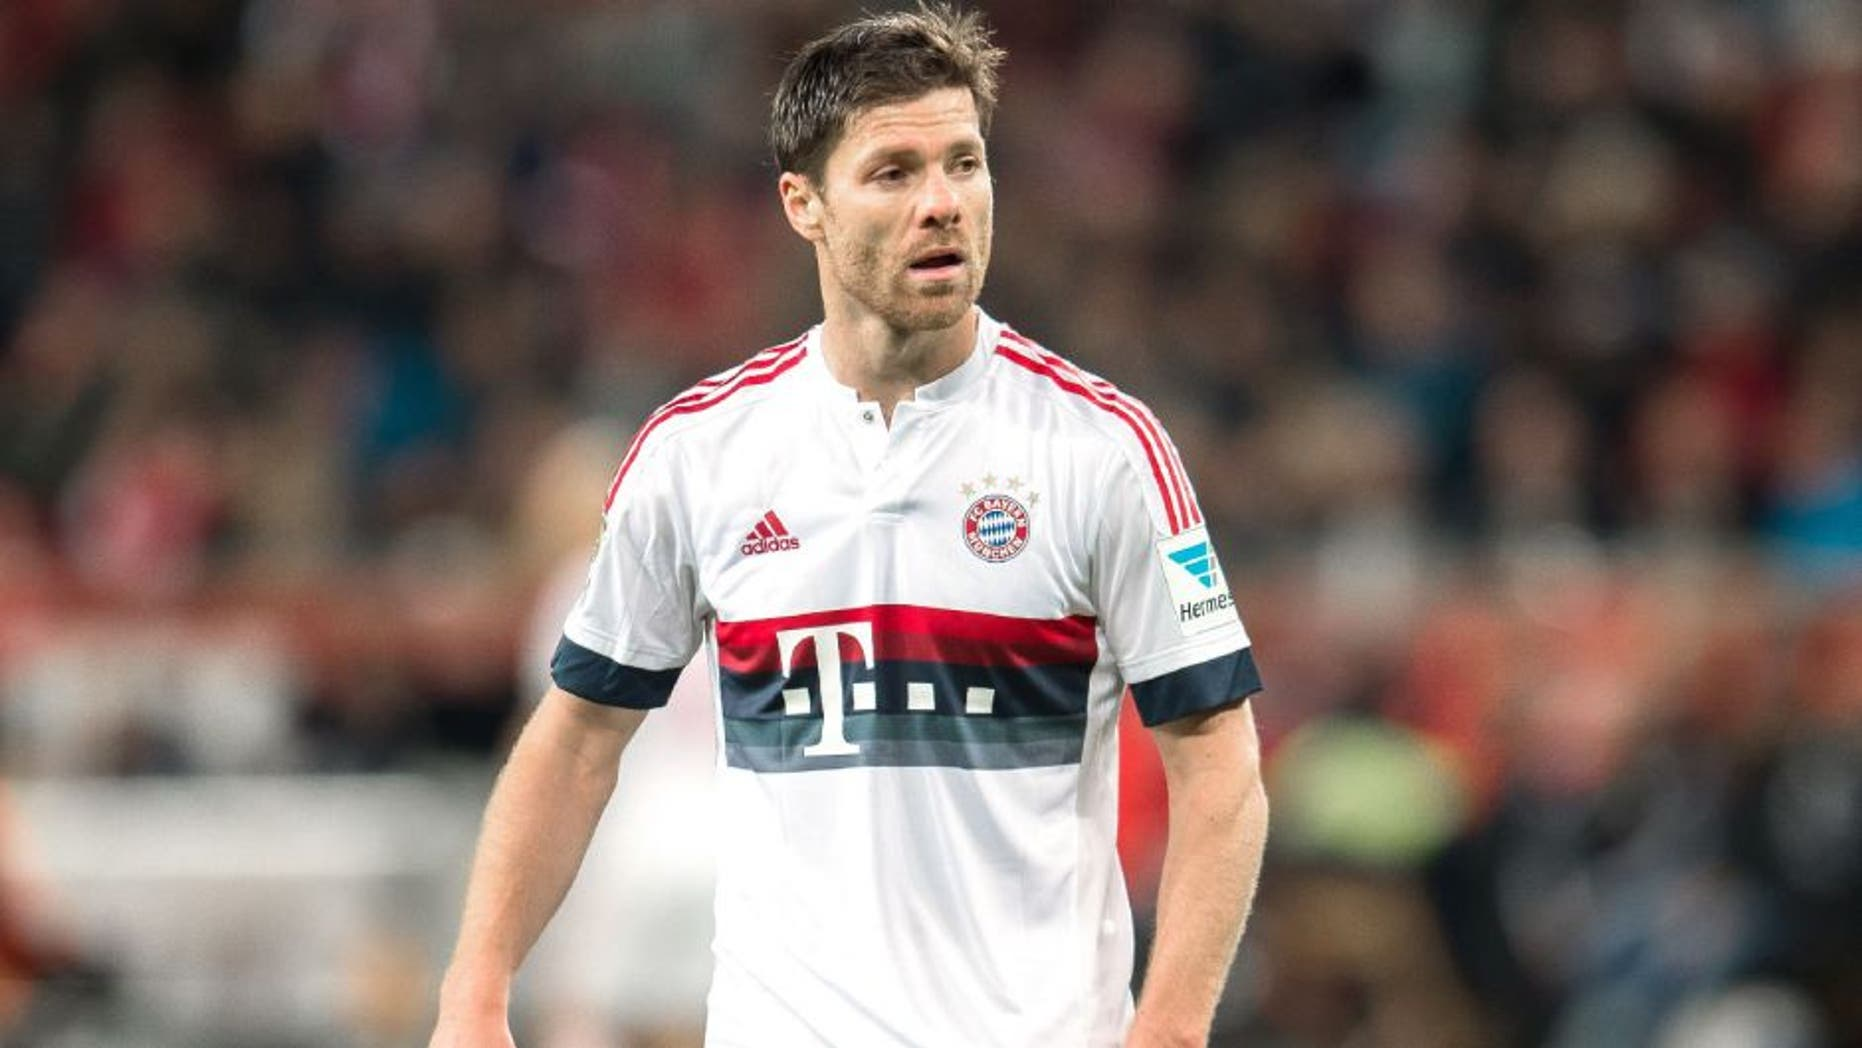 Xabi Alonso of Bayern Munich during the Bundesliga match between Bayer 04 Leverkusen and FC Bayern Munich on February 6, 2016 at the BayArena in Leverkusen, Germany.(Photo by VI Images via Getty Images)